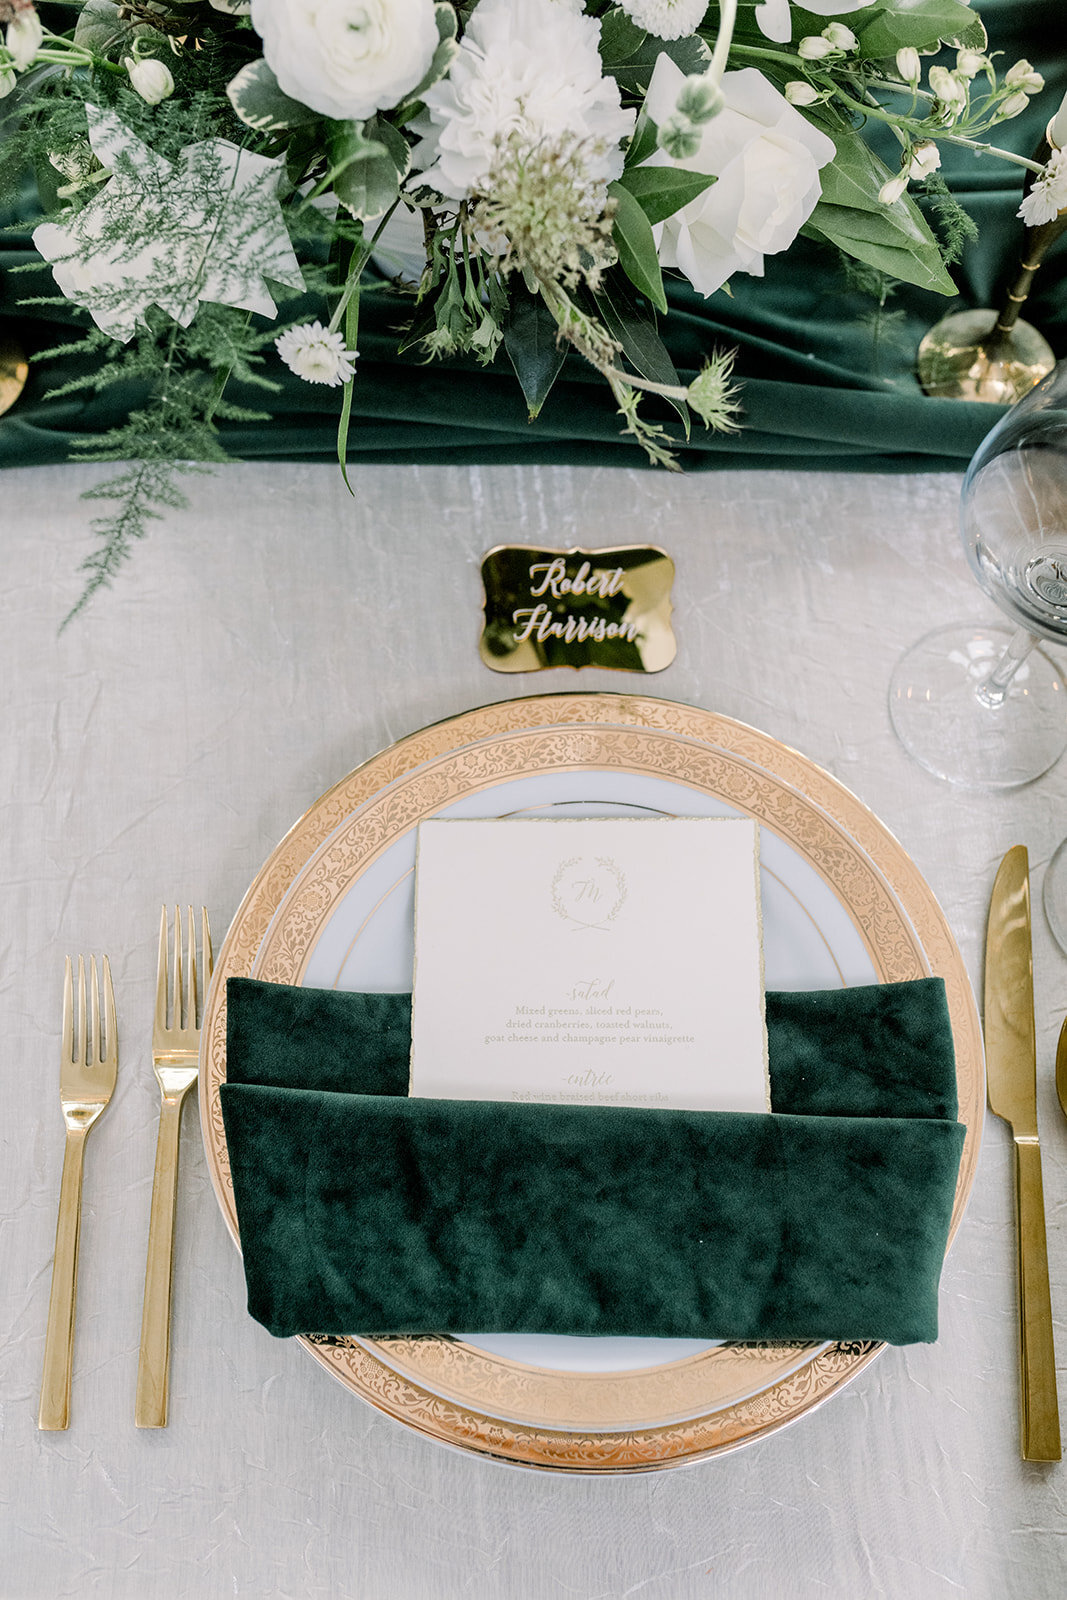 Ritz Charles Emerald Styled Shoot 2020 - Alison Mae Photography - Indianapolis Wedding Photographer-376_websize